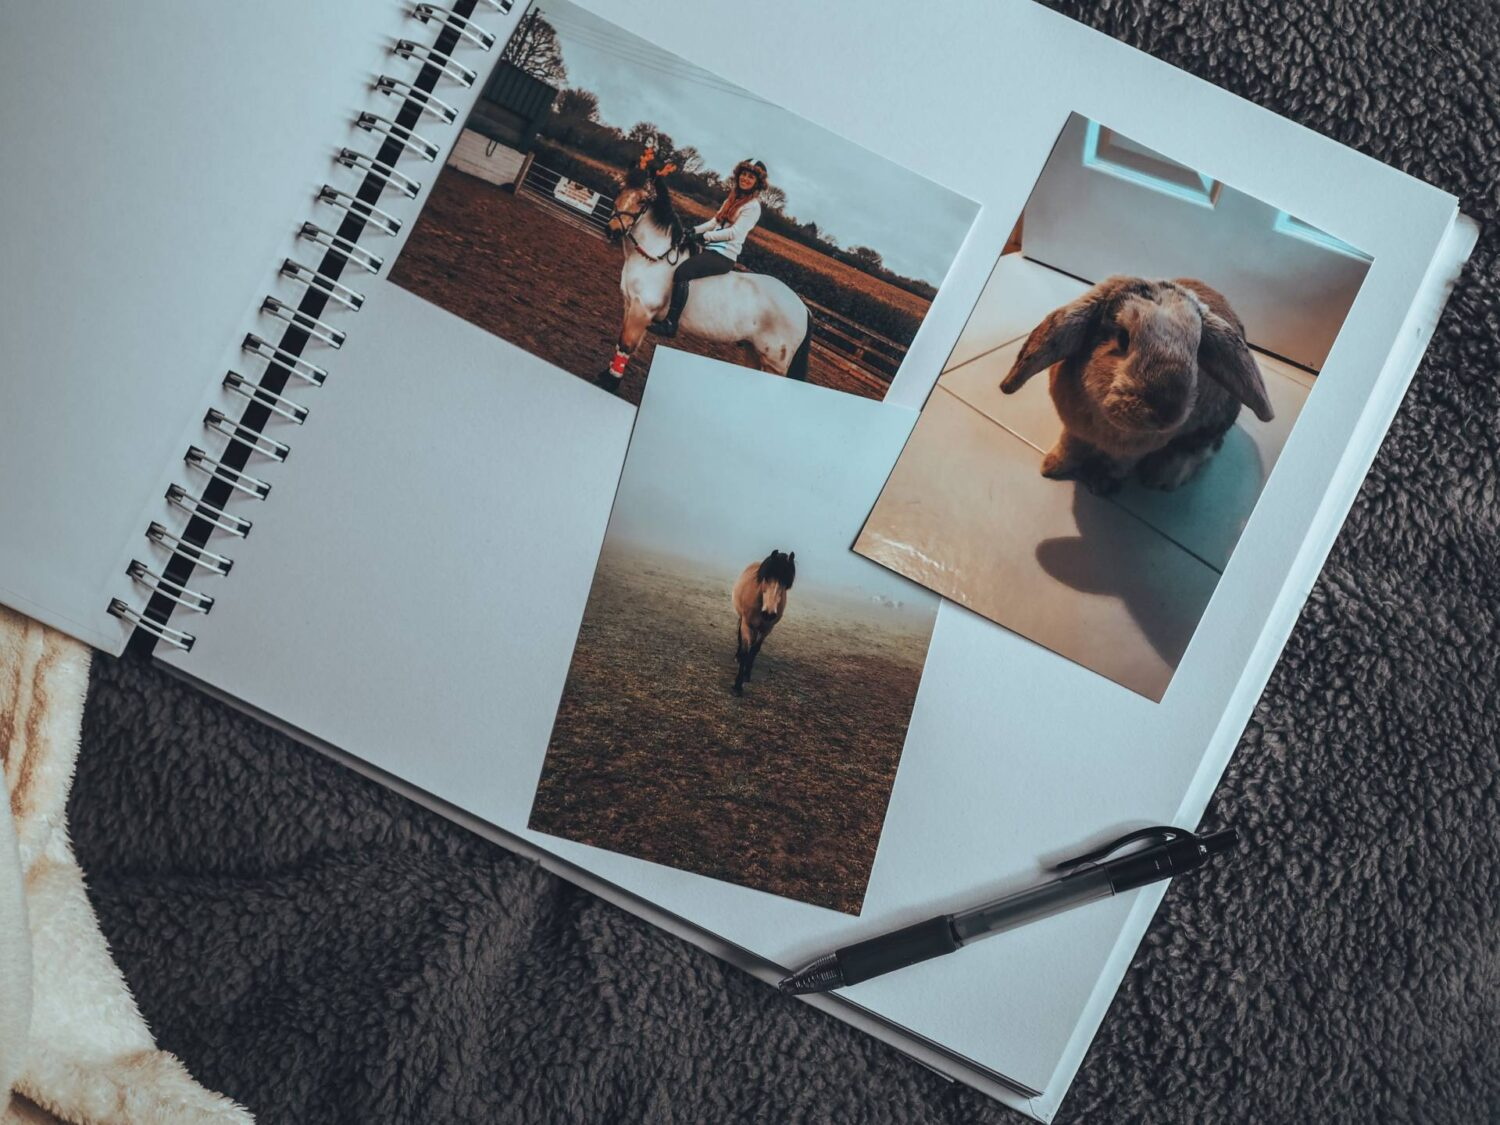 Scrapbooking as a way of documenting life